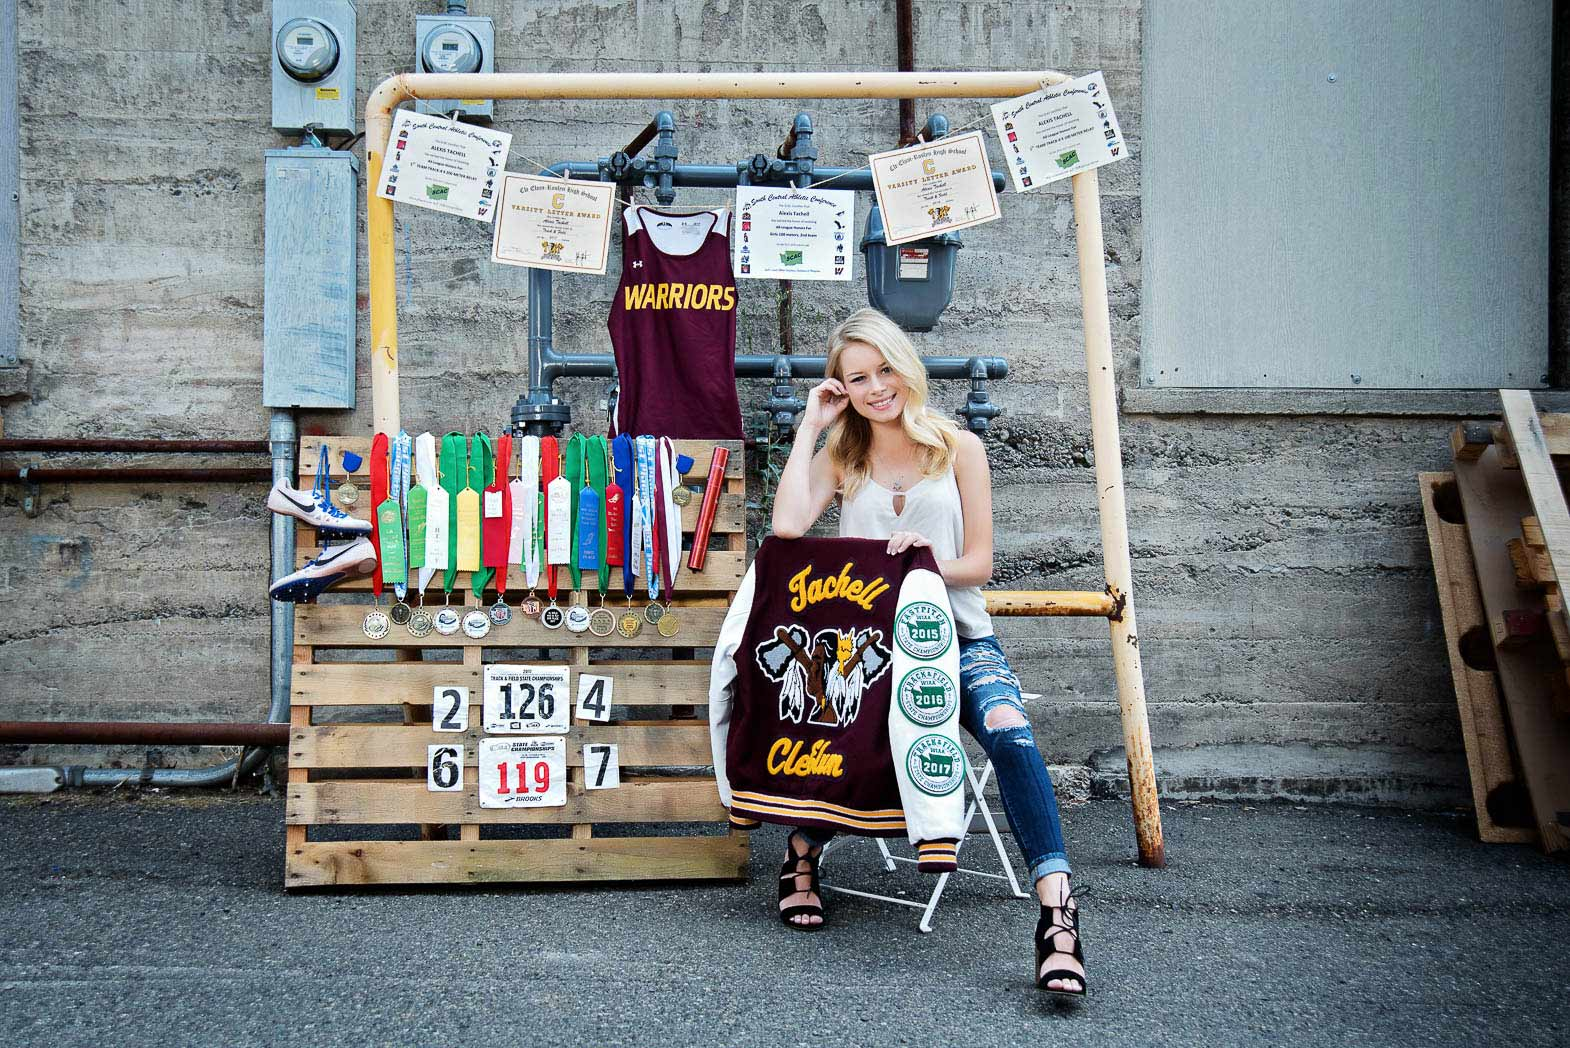 senior model sitting in front of display of all her high school medals and awards